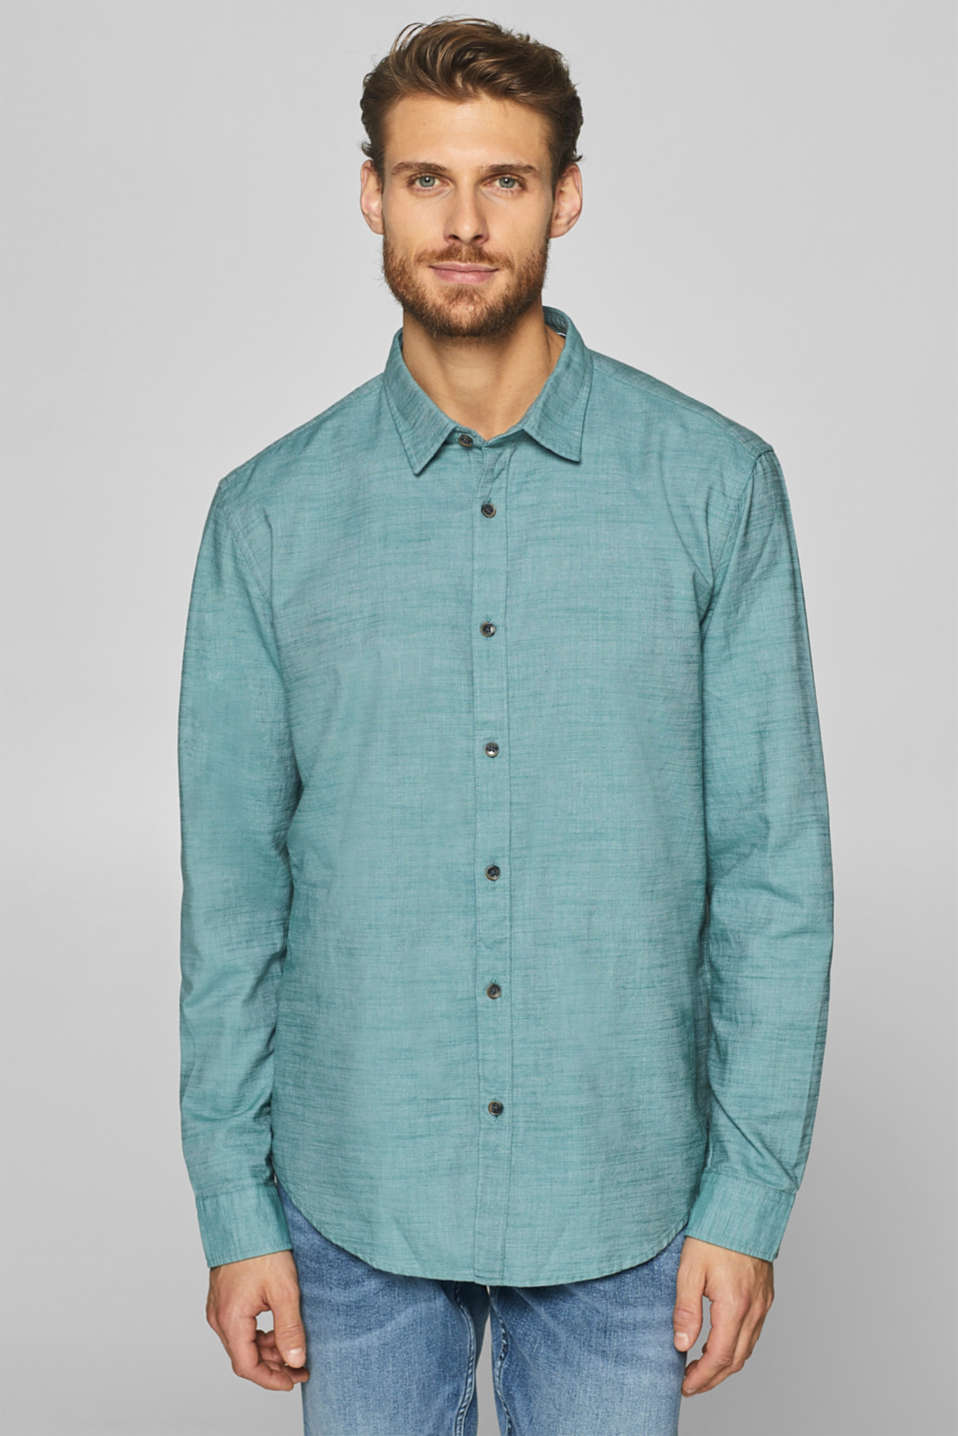 Esprit - Chambray shirt in 100% cotton